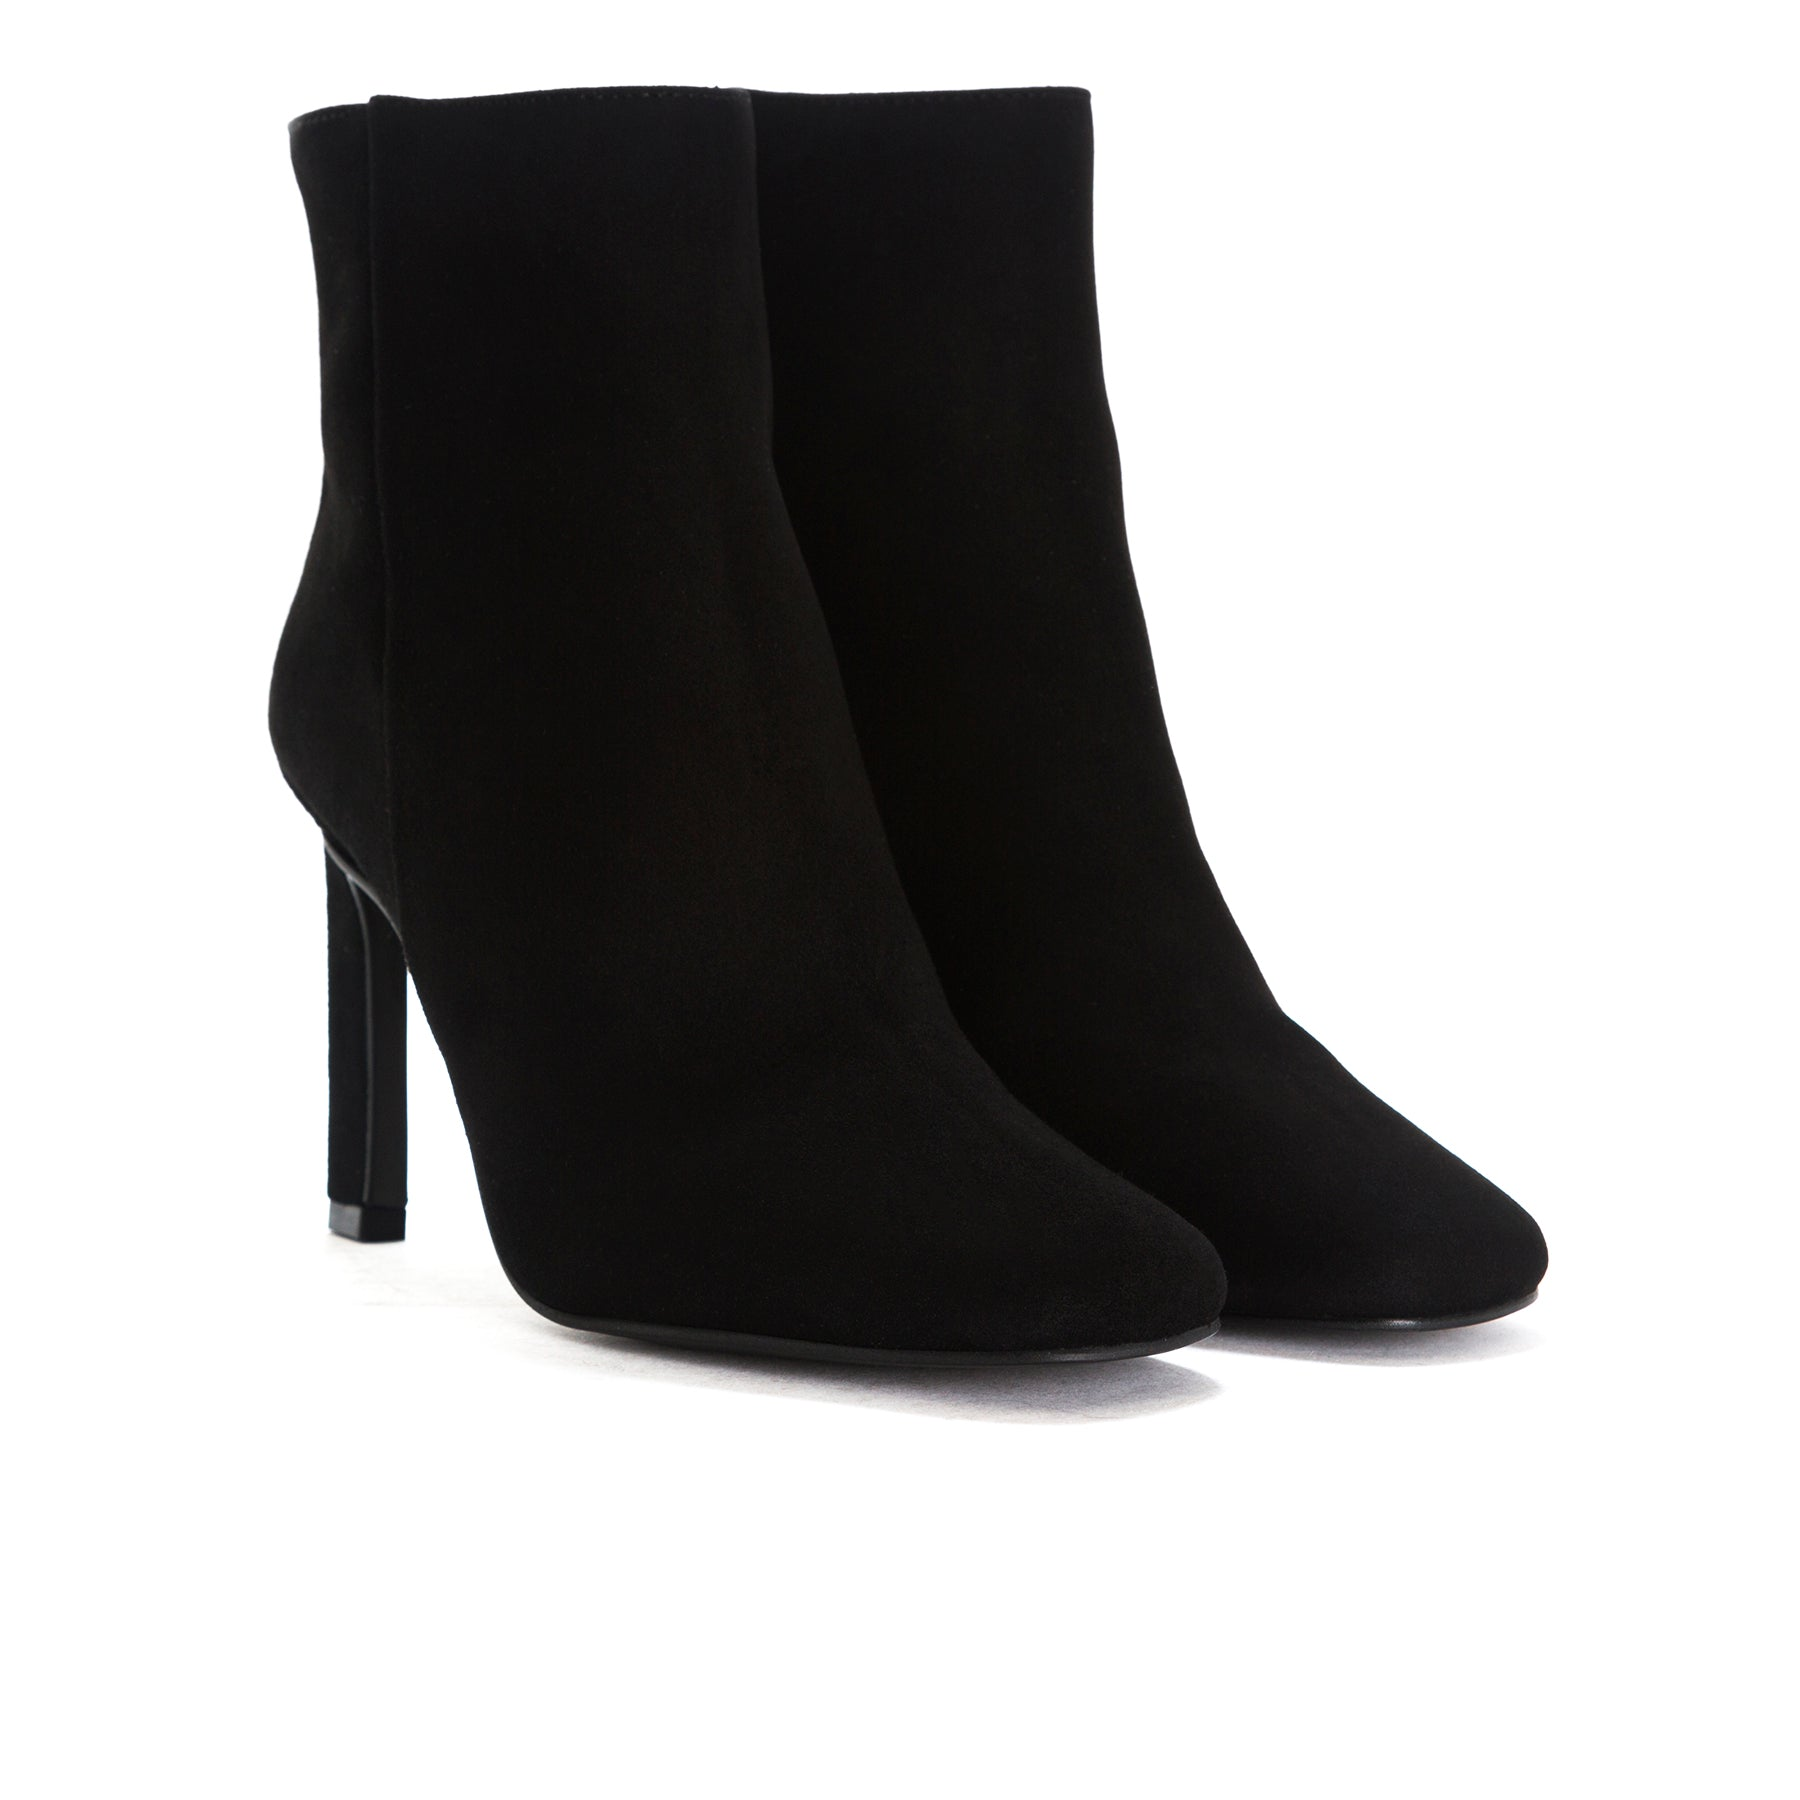 Lavrio Black Suede Booties